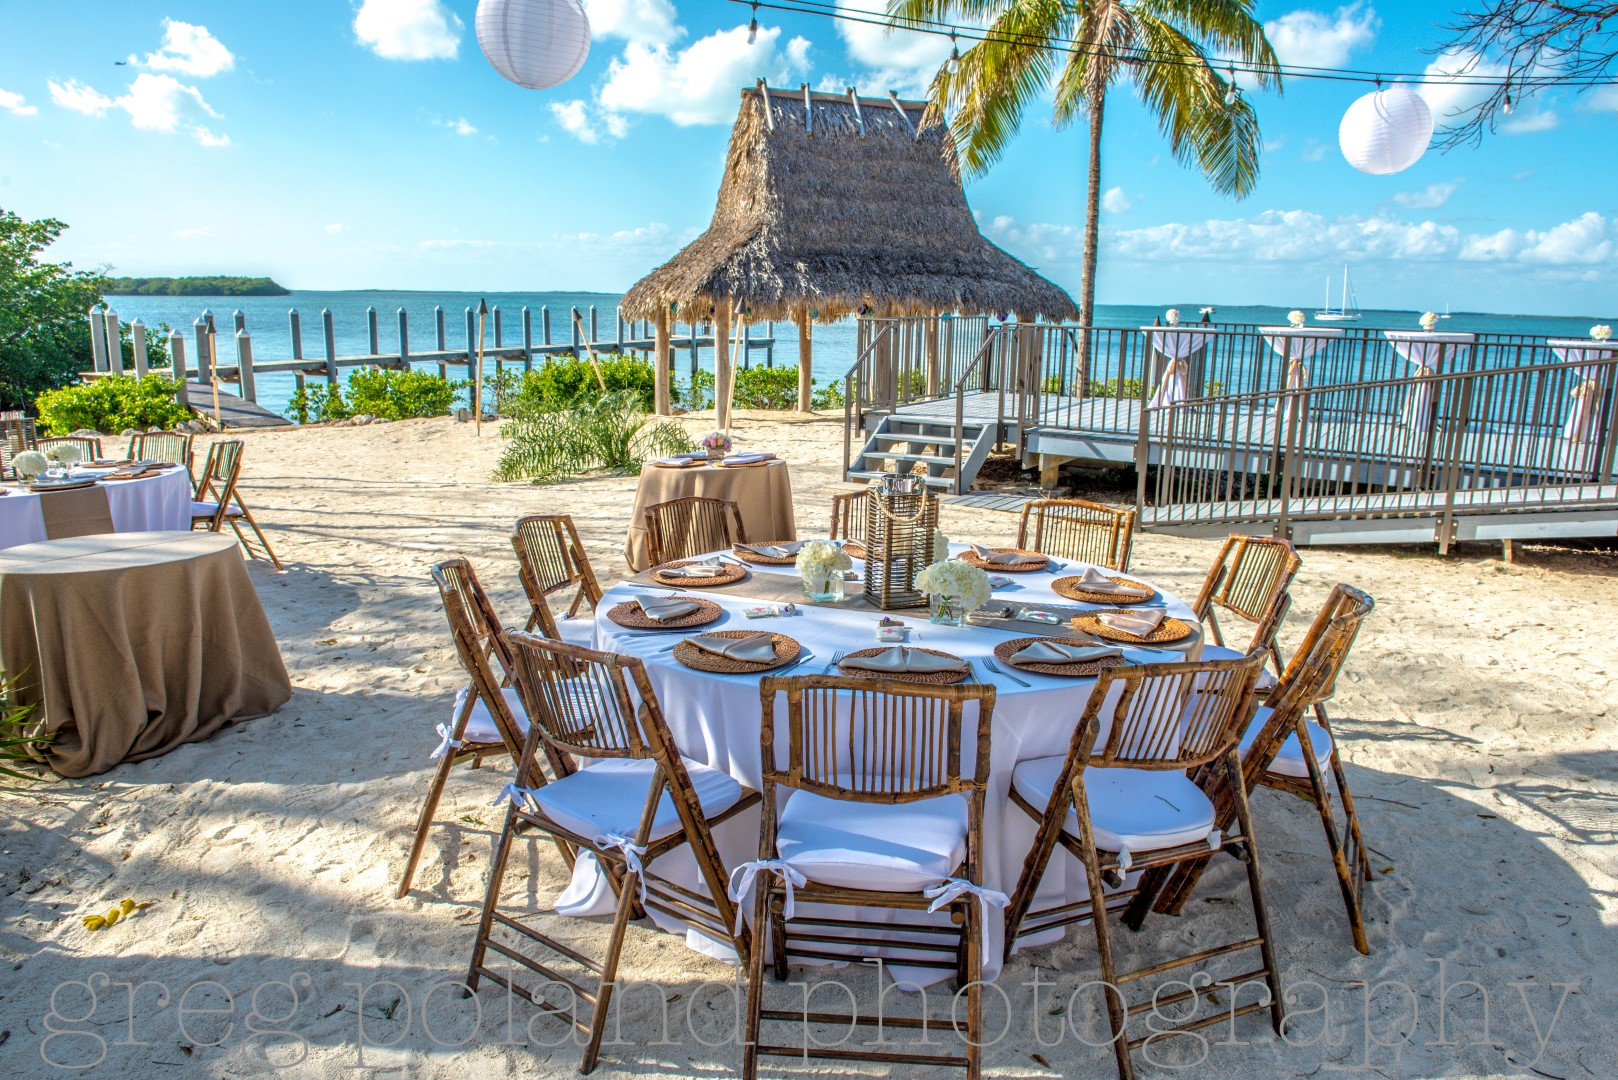 Key Largo Lighthouse Beach Weddings Wedding Venue in South Florida  PartySpace